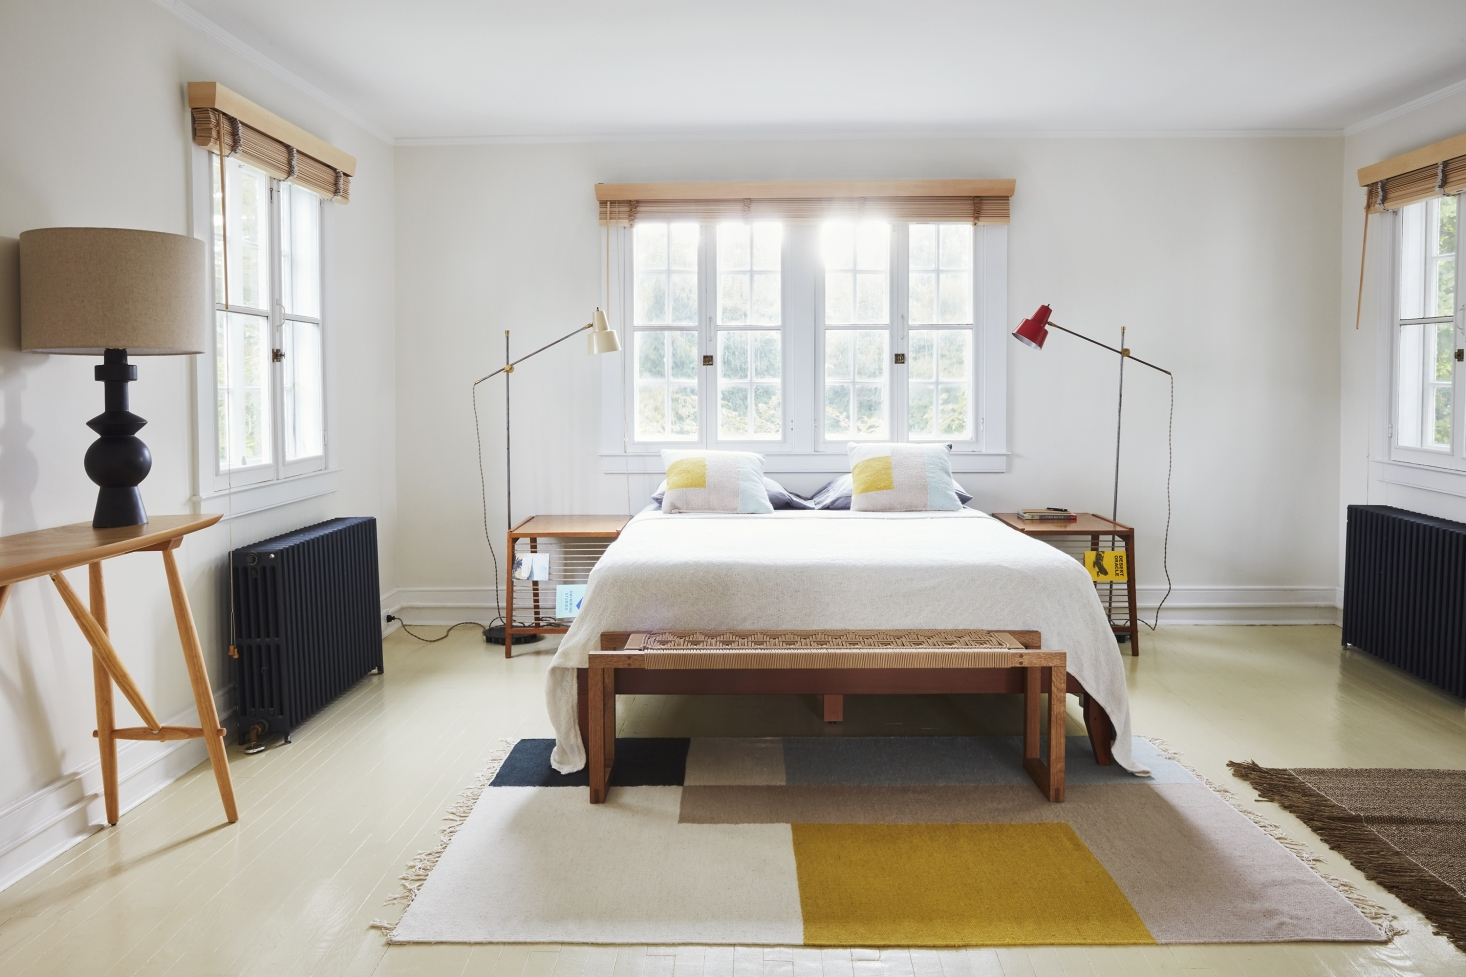 Steal This Look: An Idiosyncratic French Mod Bedroom in Bellport, NY